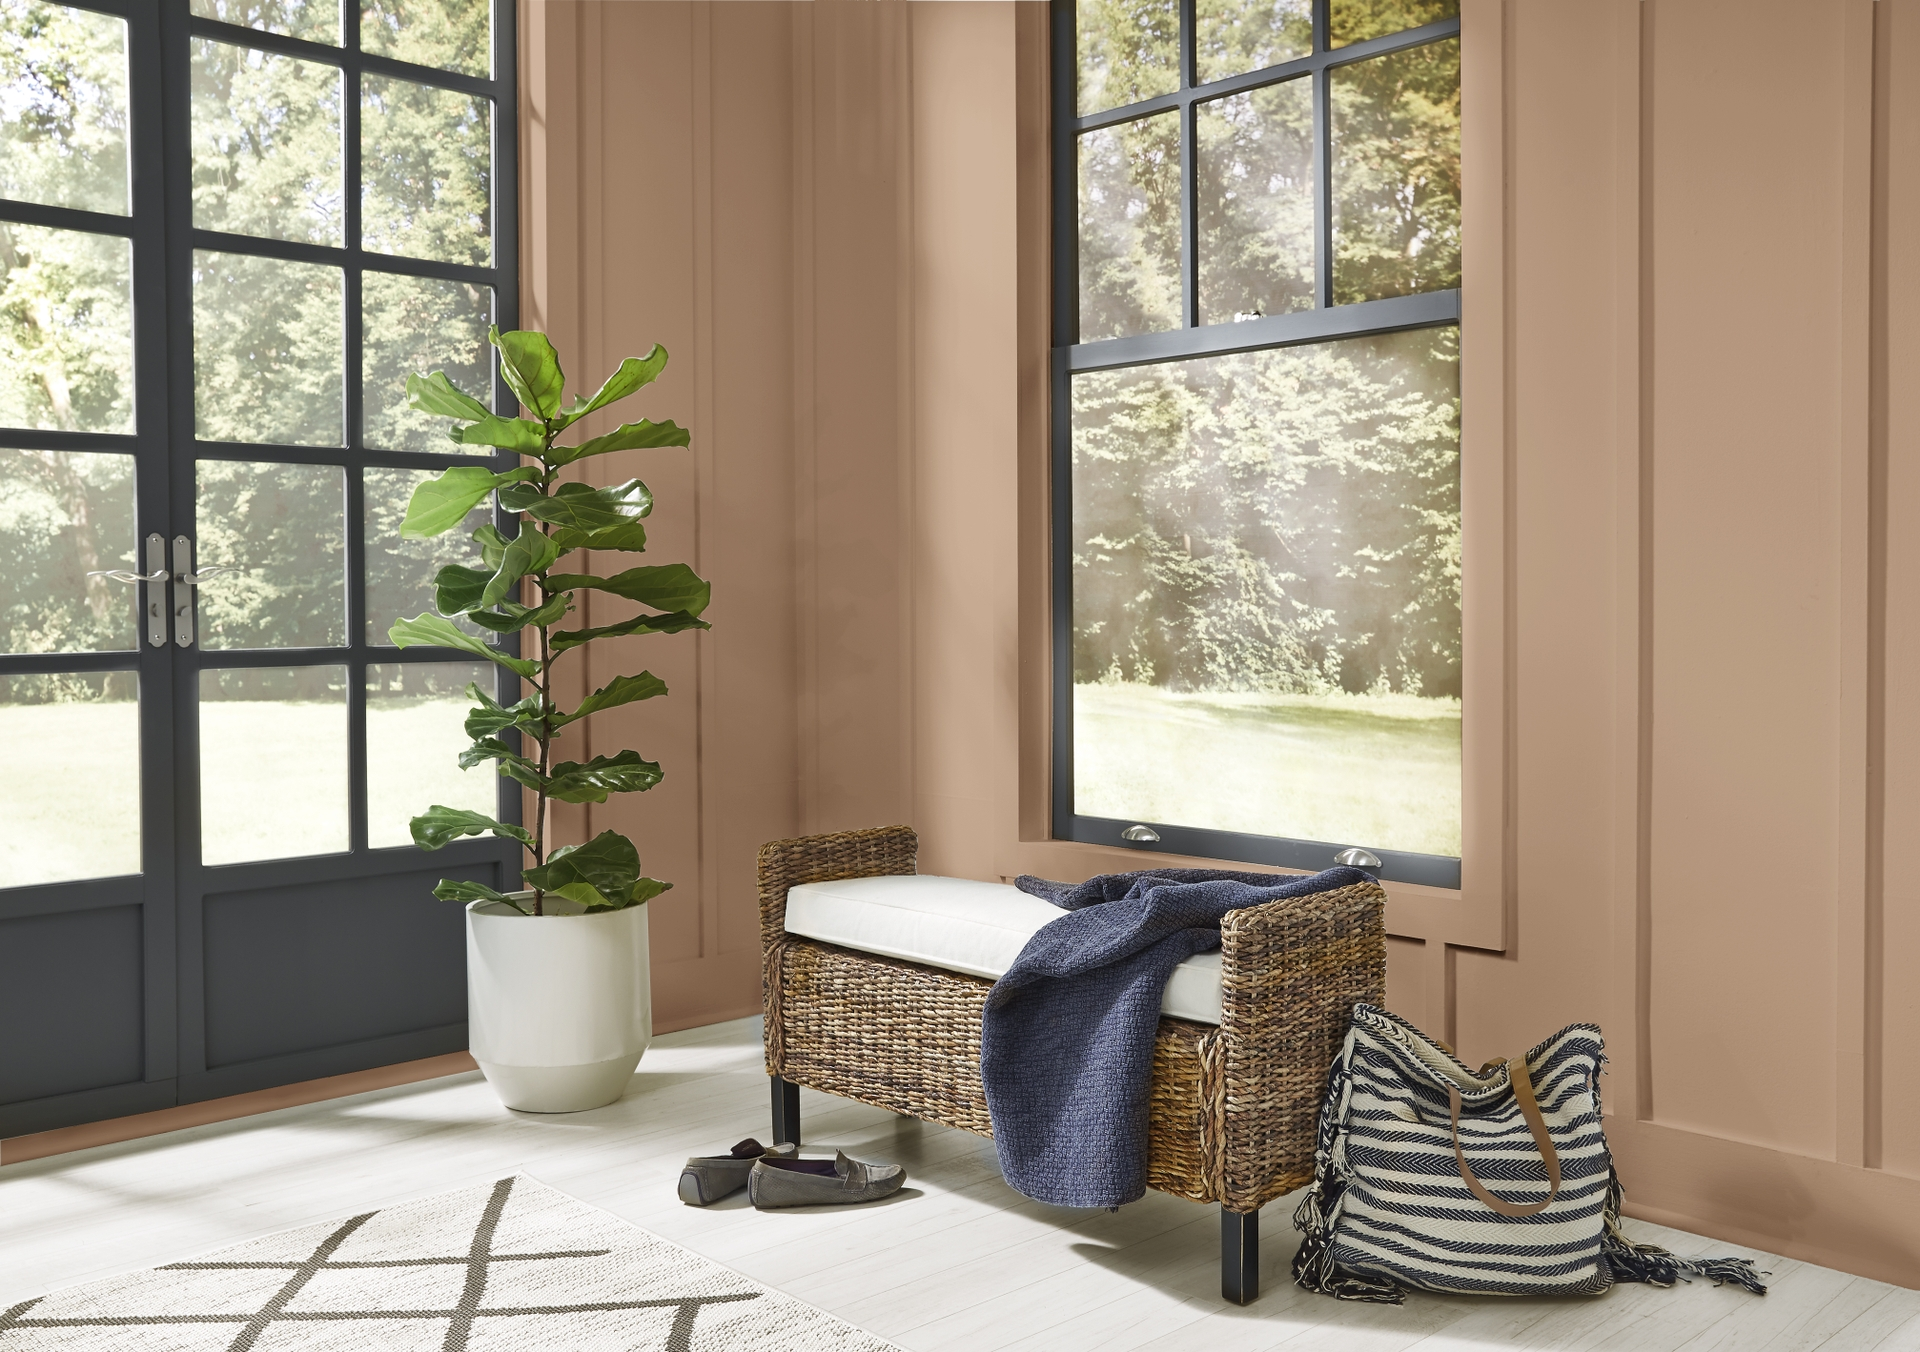 BEHR_2021TRENDS_CASUAL COMFORT_ENTRY_Sierra_RGB